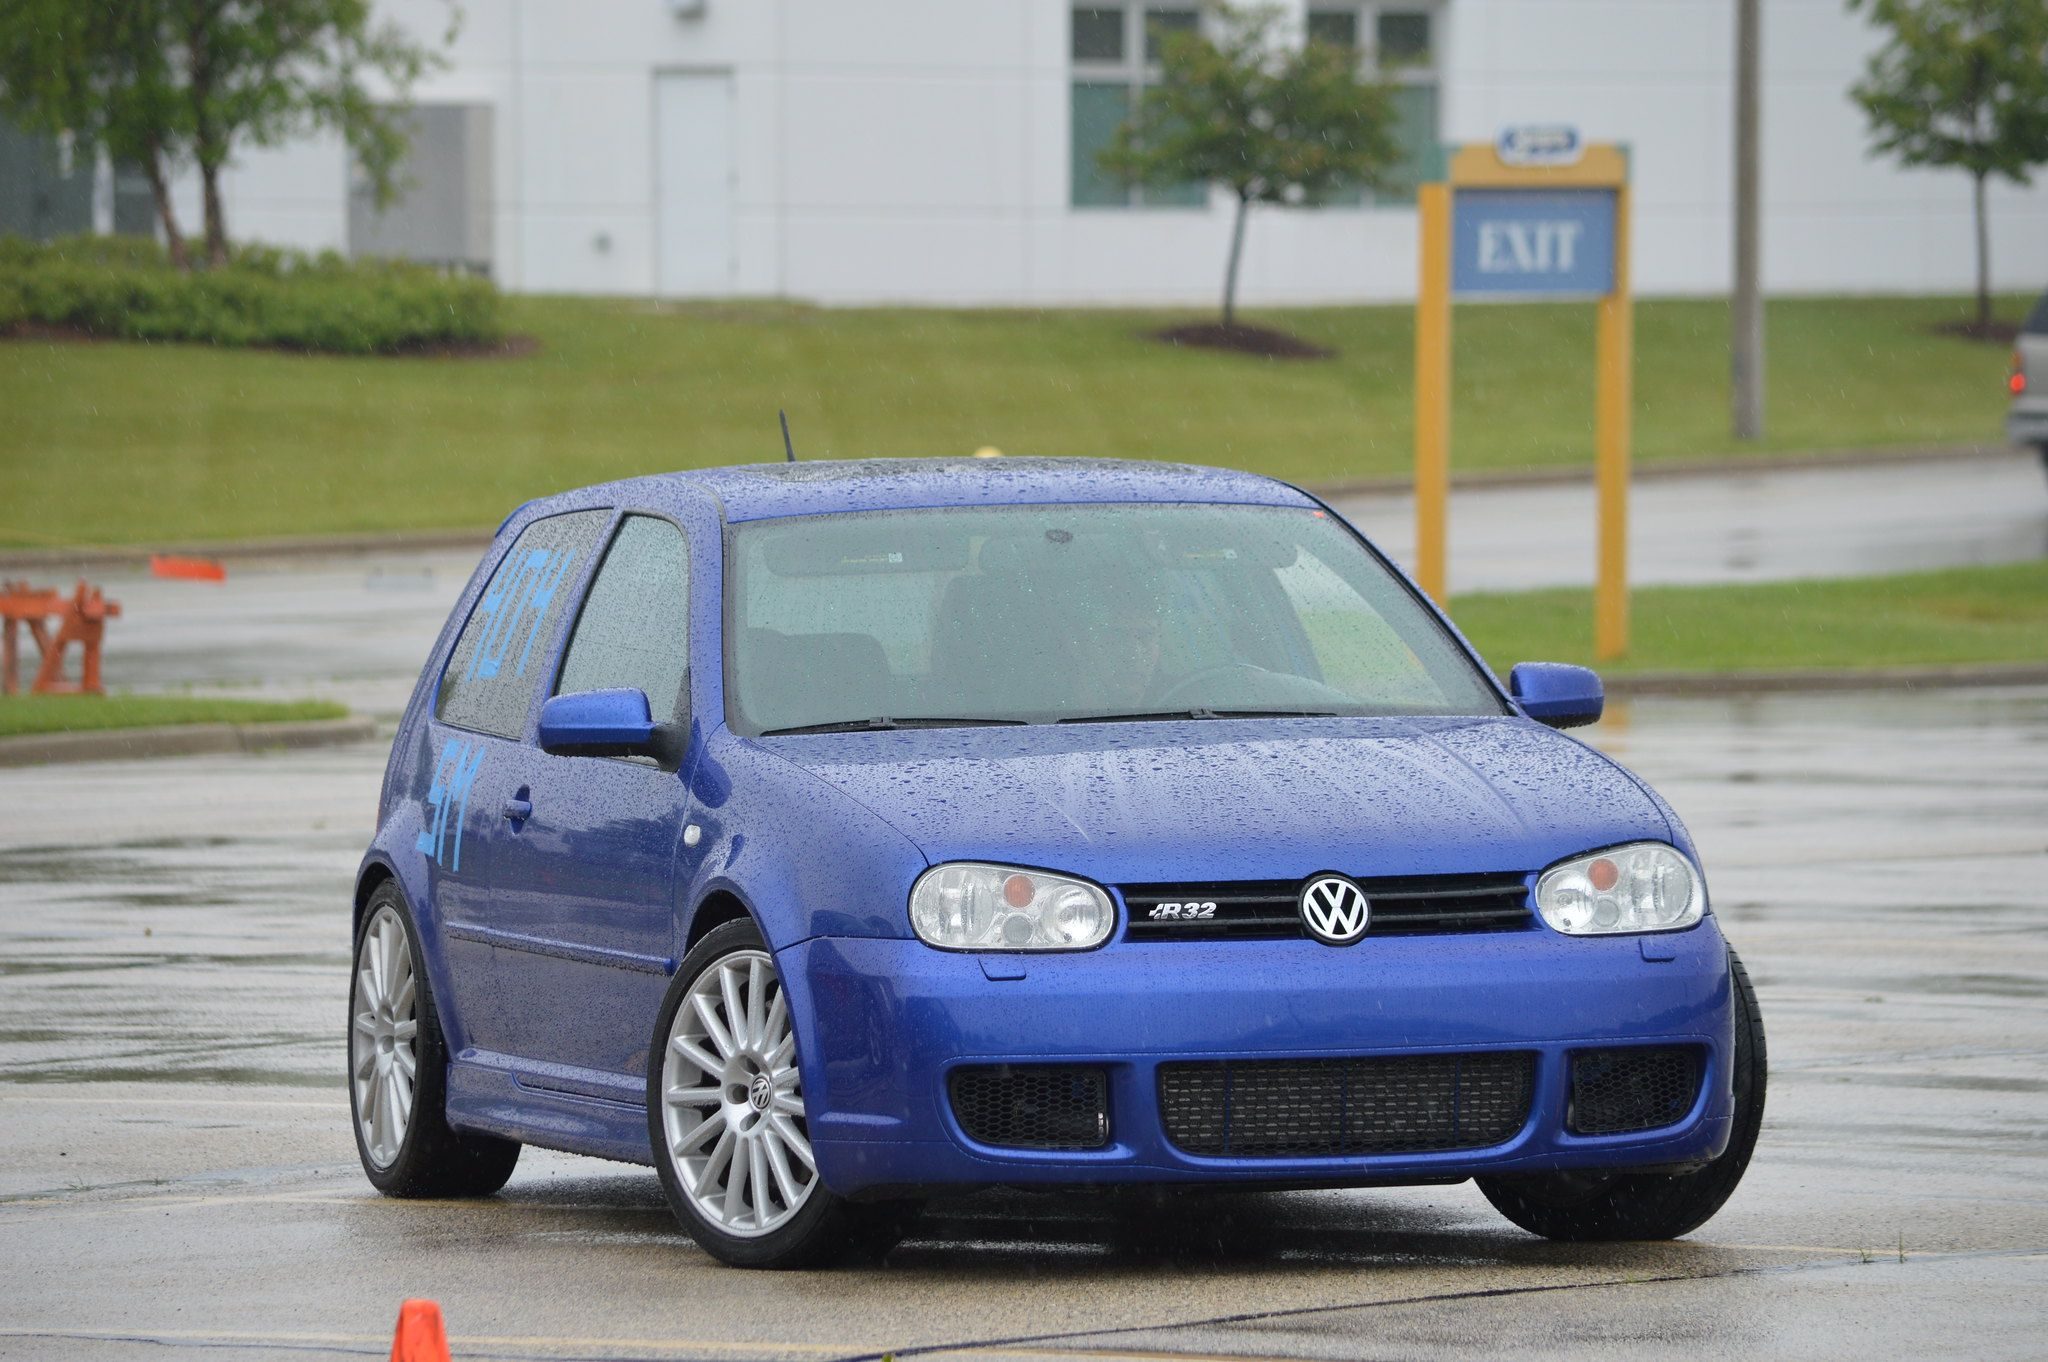 Here's What The 2004 Volkswagen R32 Costs Today